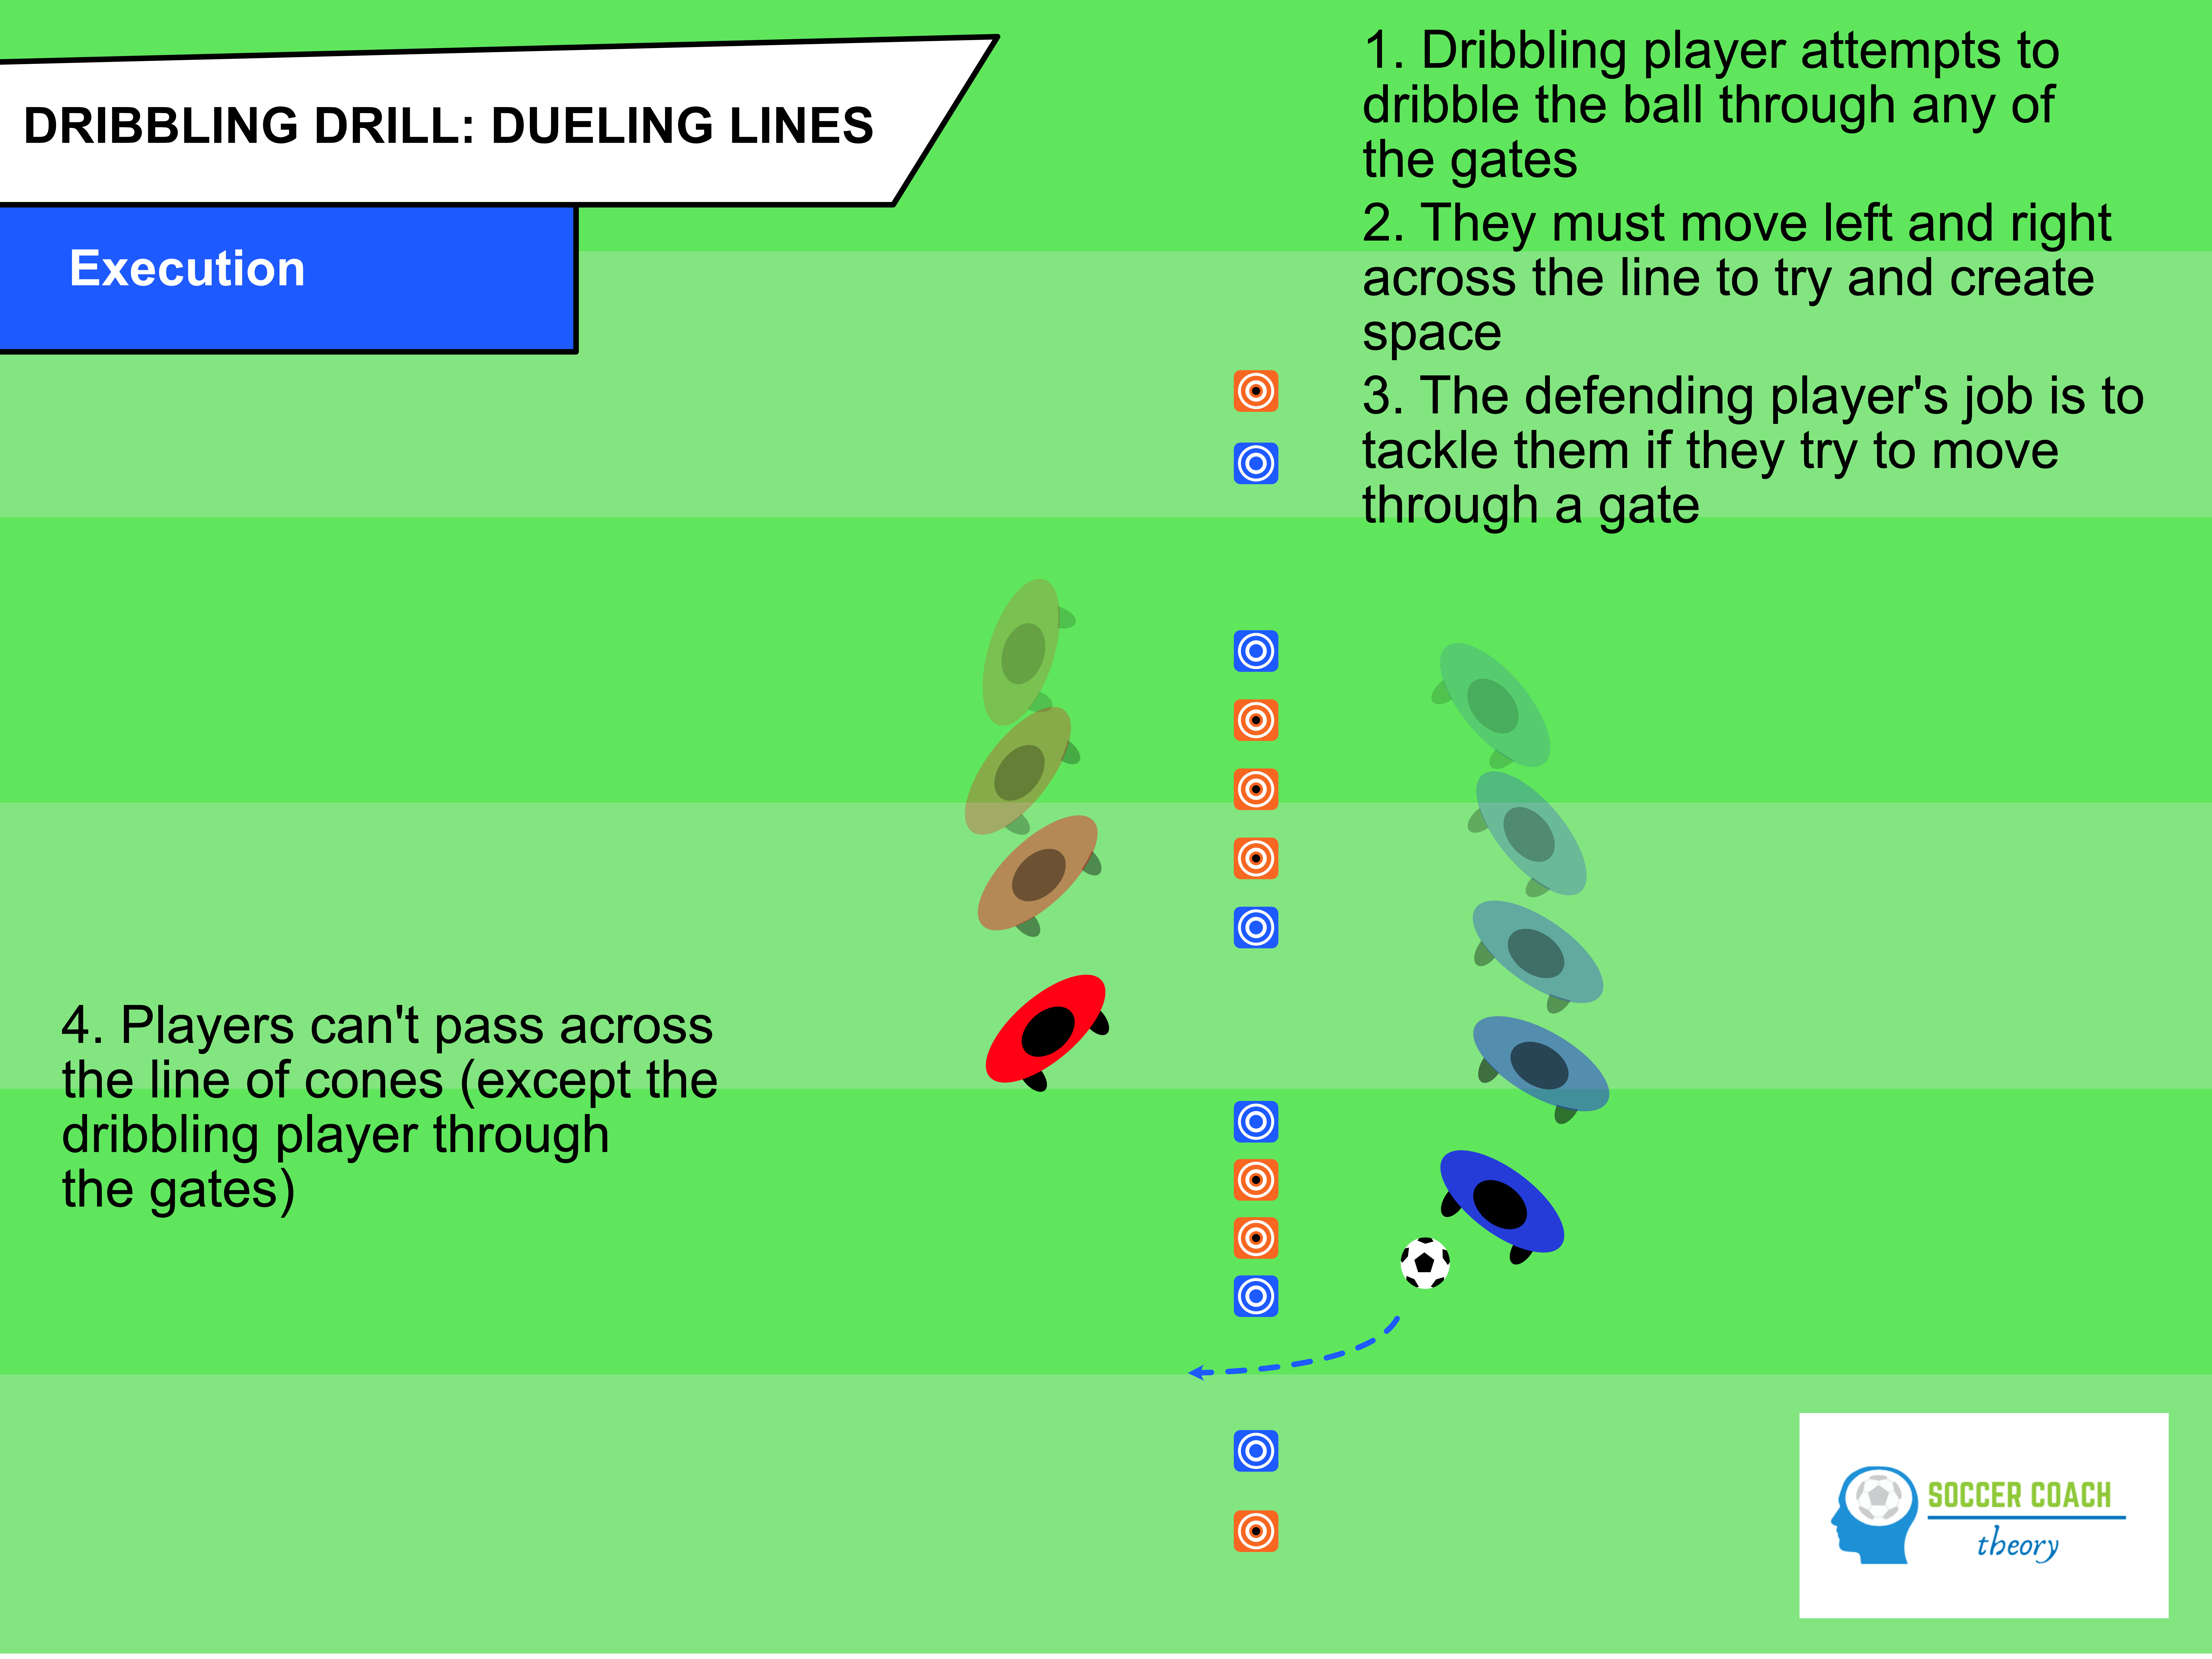 Soccer dribbling drill dueling lines - execution